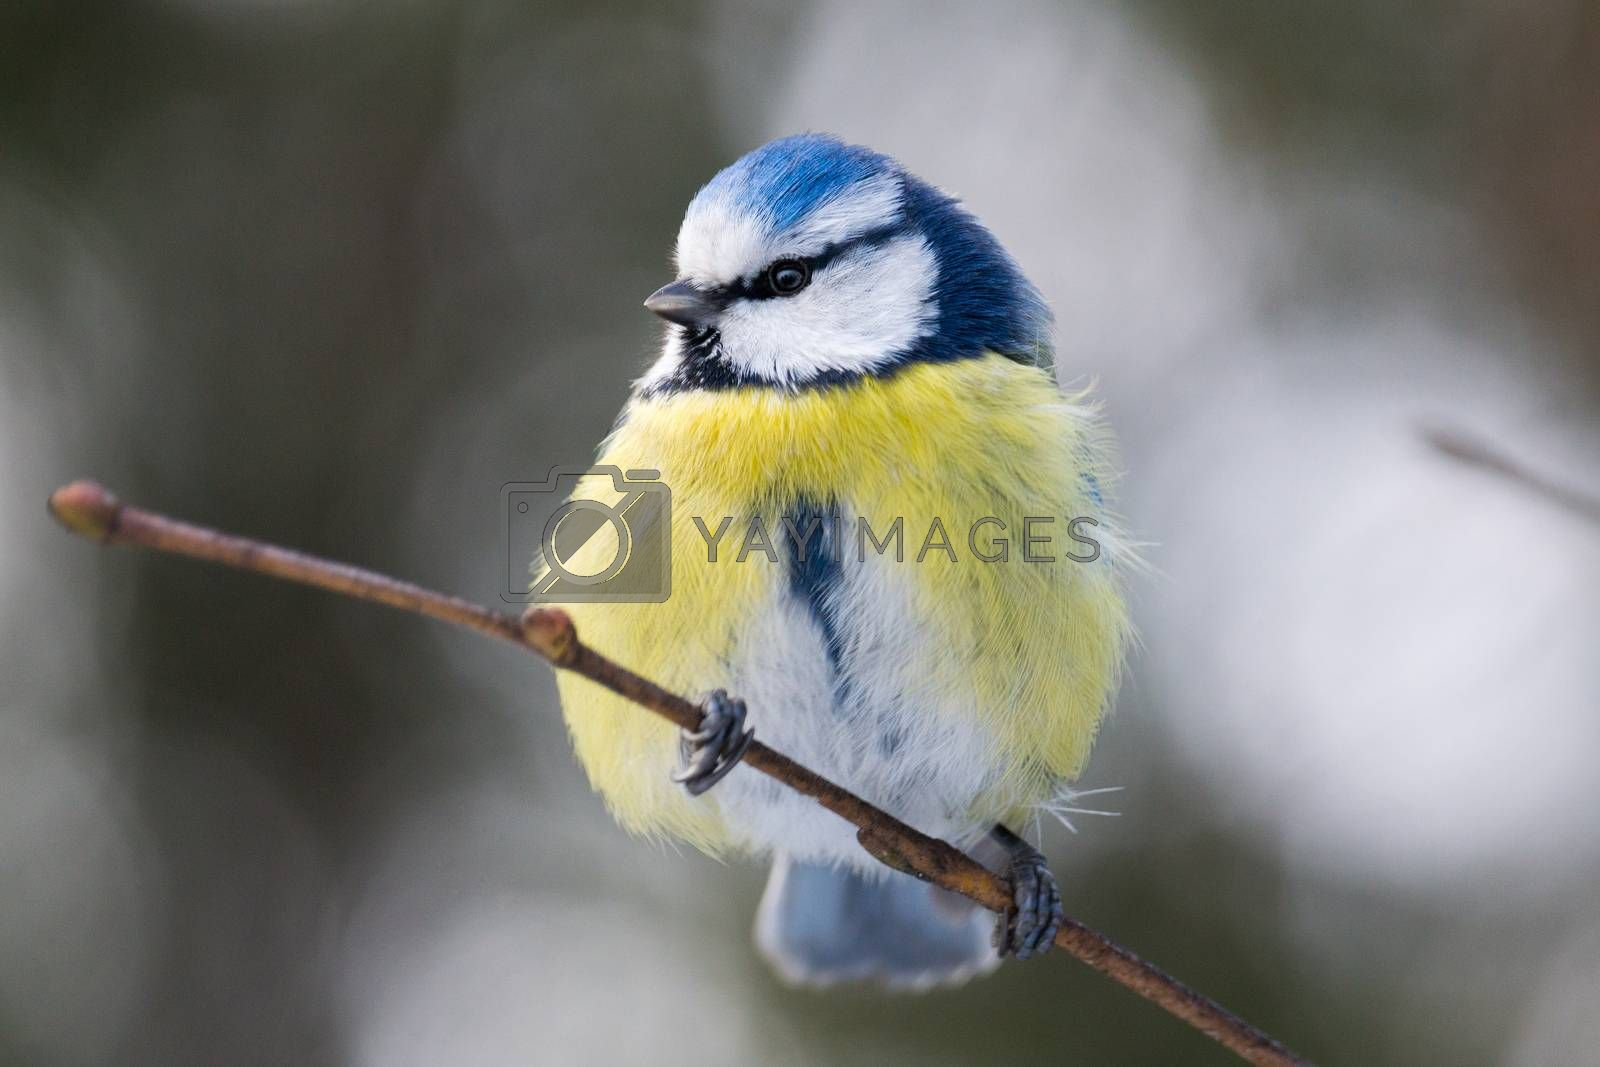 The photo shows a bird on a branch